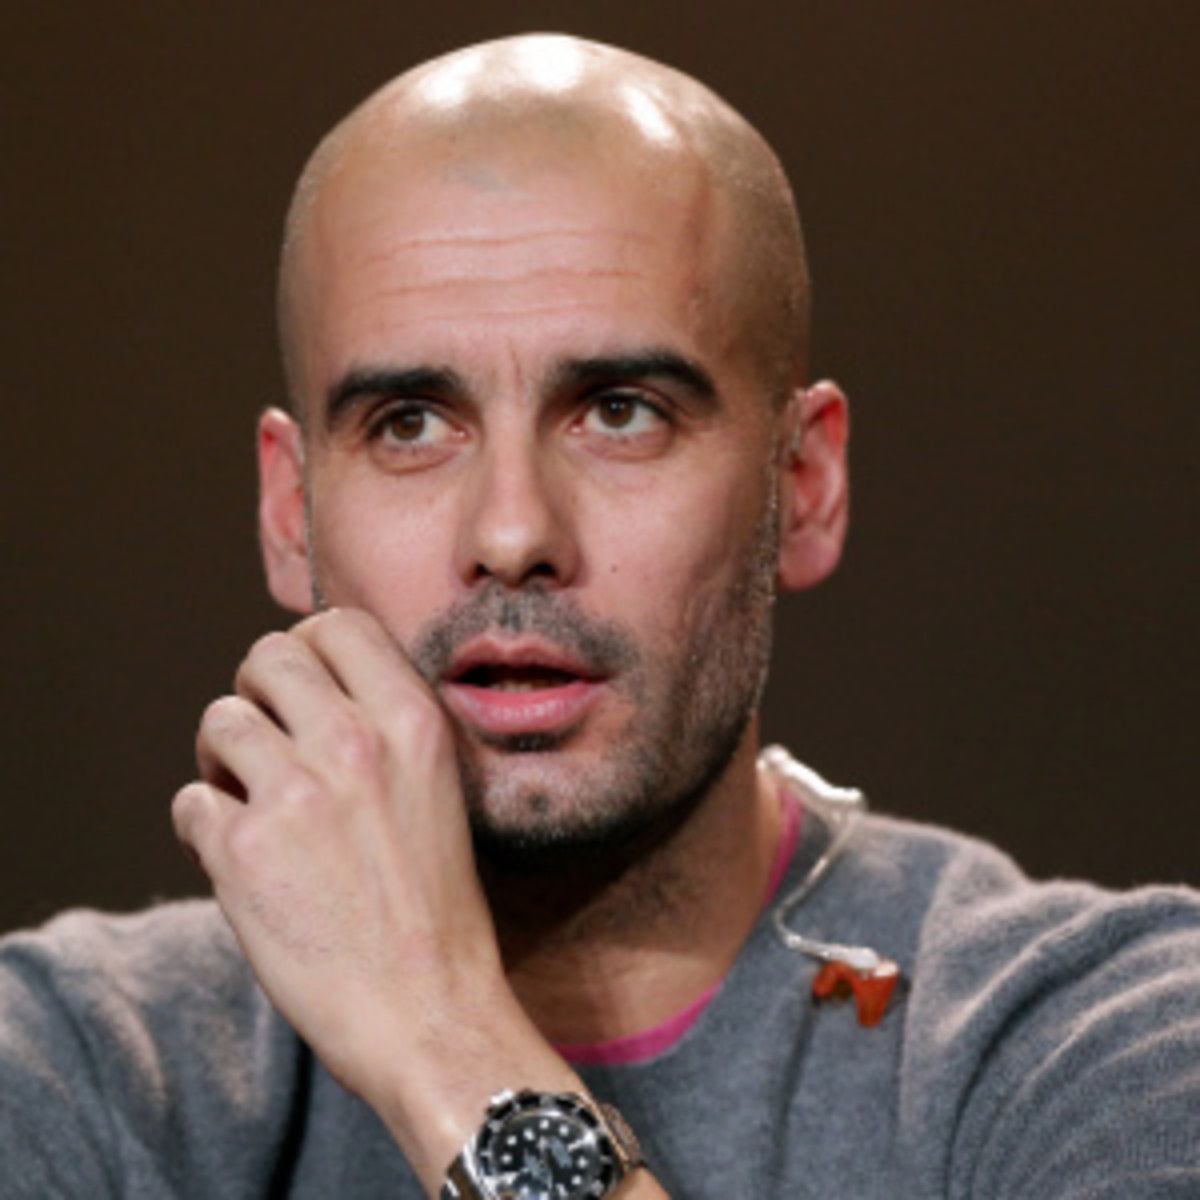 Ex-Barcelona manager Josep Guardiola reportedly spied on his players. (Christof Koepsel/Getty Images)